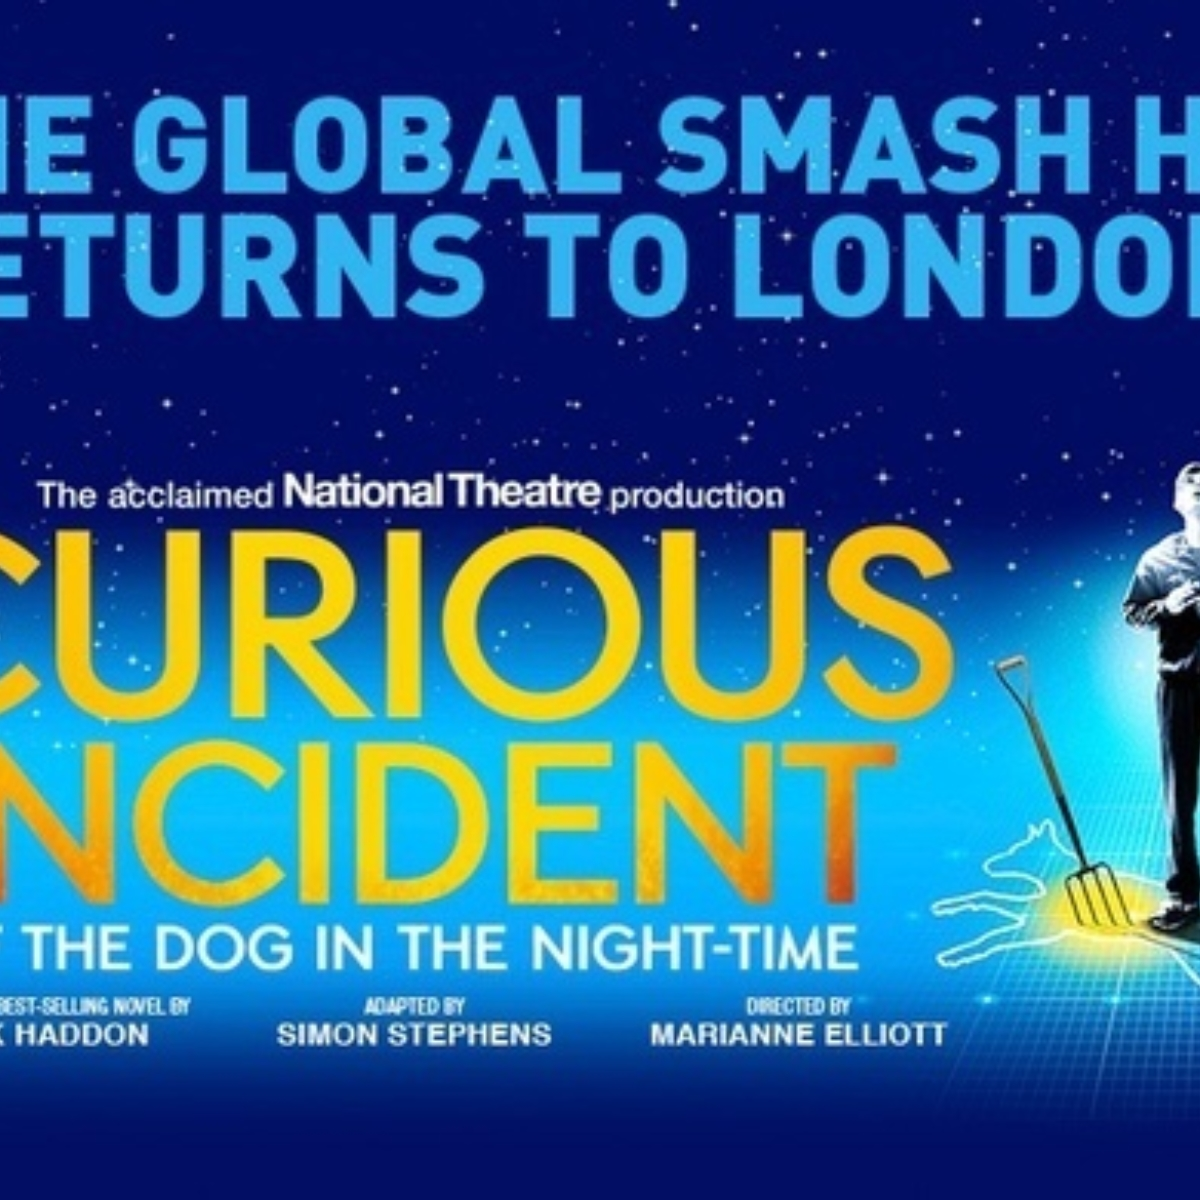 The Curious Incident of the Dog in the Night-time Images